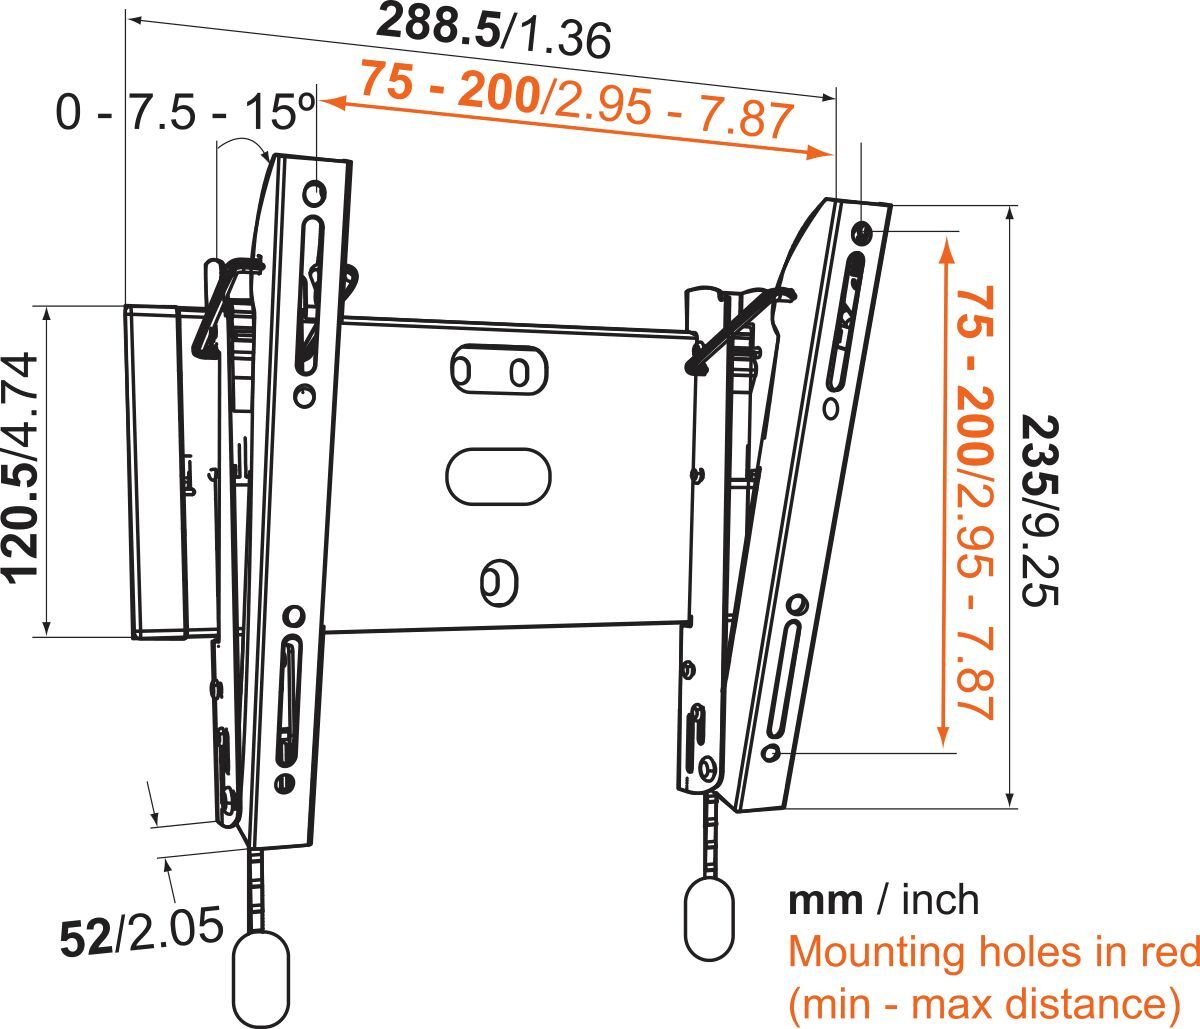 Vogel's BASE 15 S Tilting TV Wall Mount - Suitable for 20 - Suitable for Dimensions